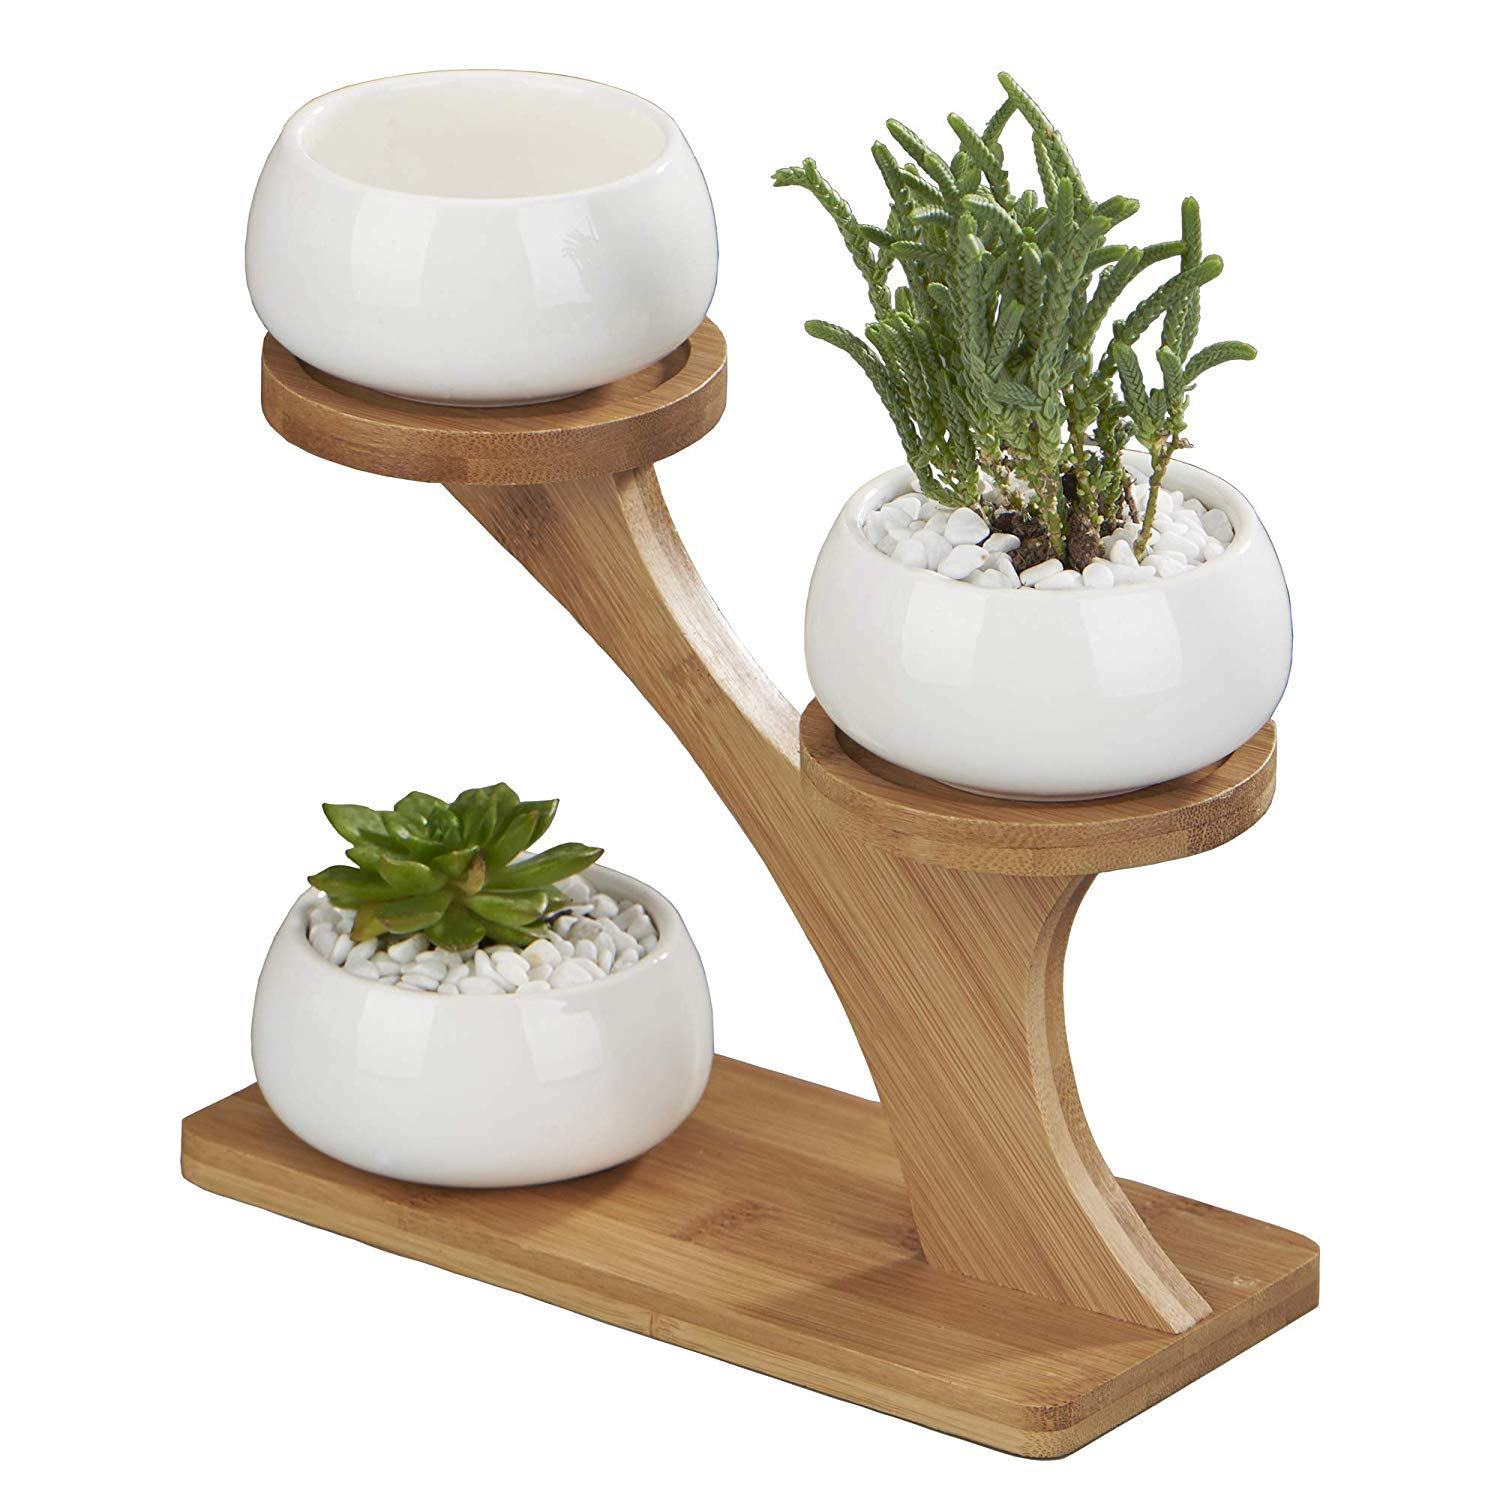 Flowerplus Planter Pots Indoor, 3 Pack 3 inch White Ceramic Decorative Small Round Succulent Cactus Flower Plant Pot with Tree Tier Bamboo Stand for Indoors Outdoor Home Garden Kitchen Decor